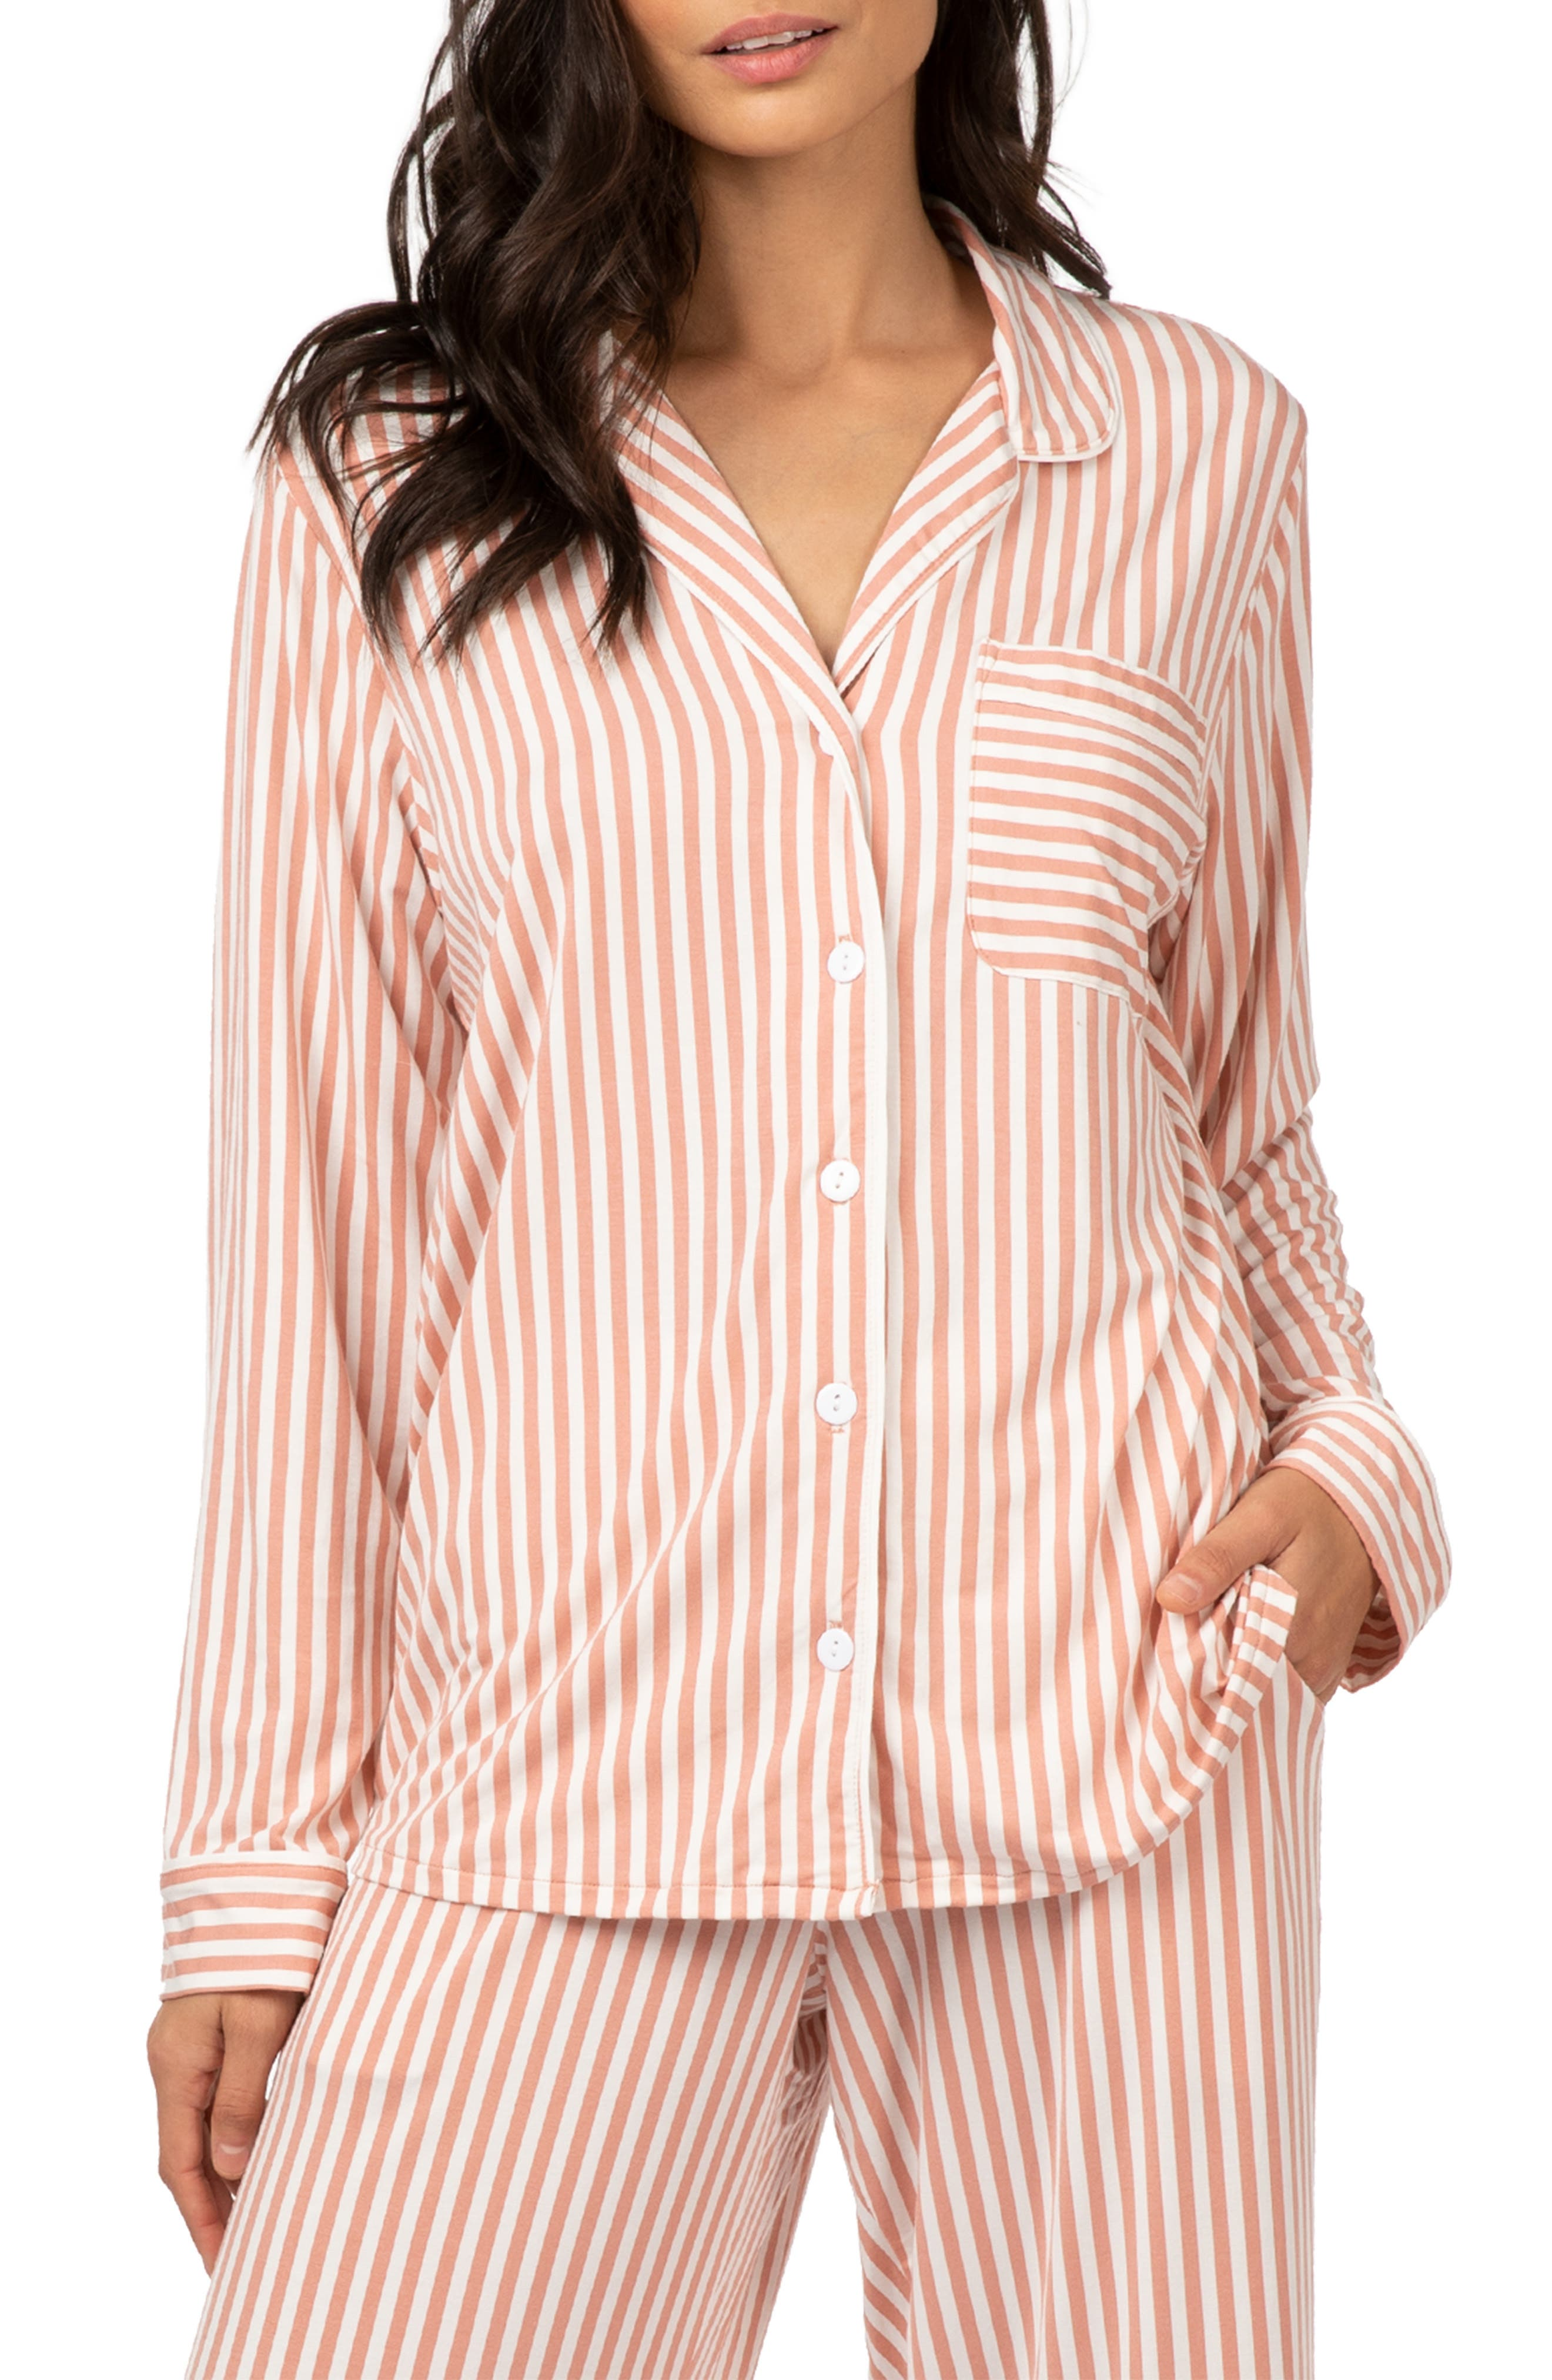 The All Day Lounge Shirt